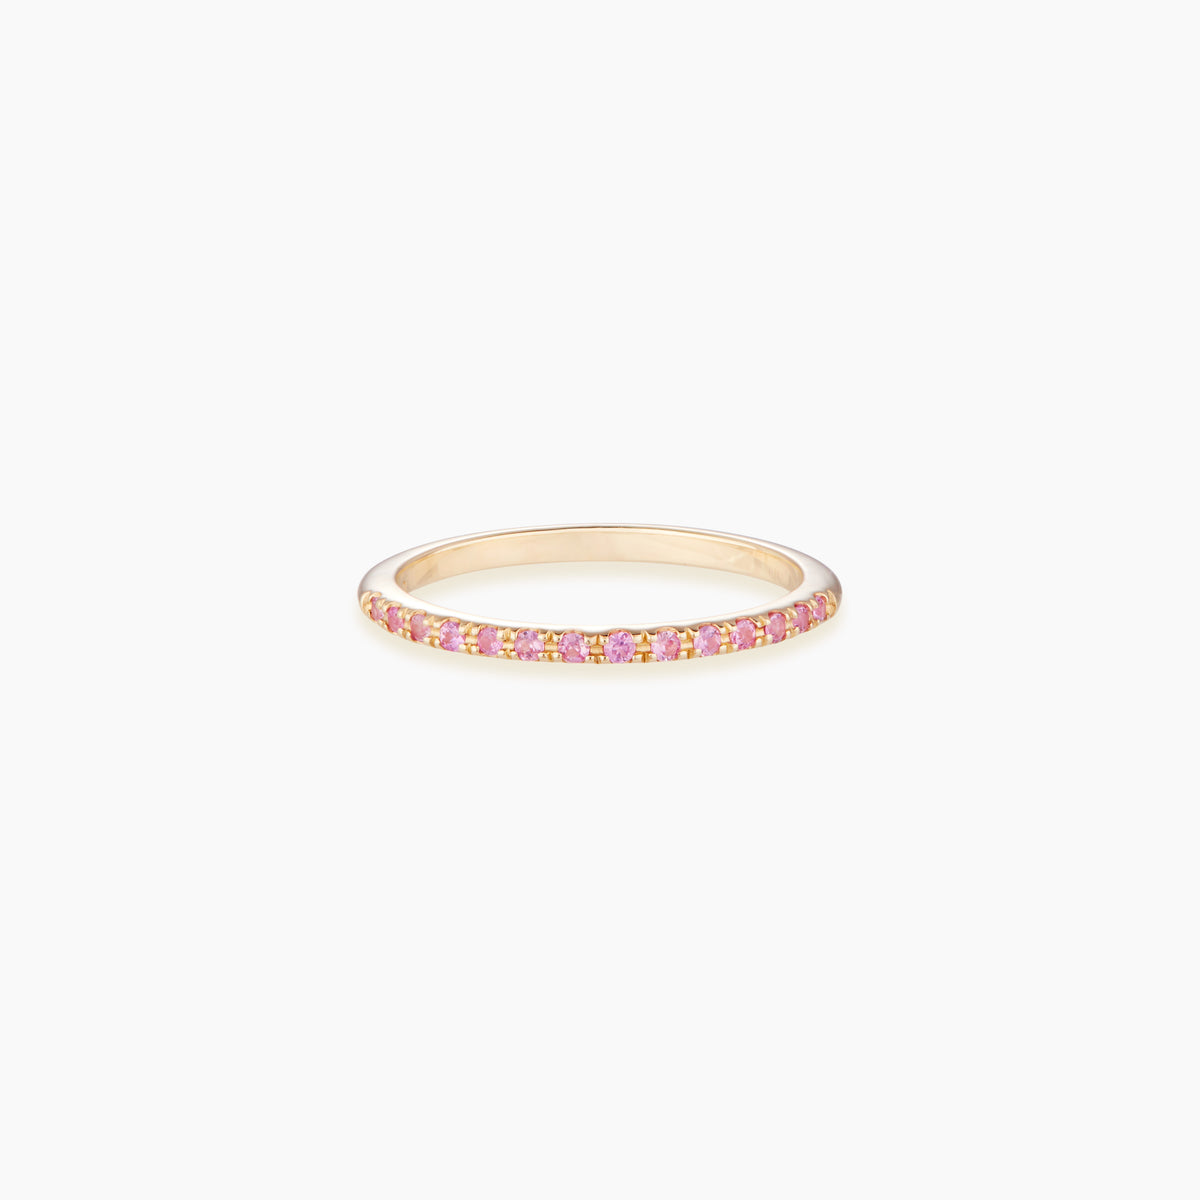 A beautiful half eternity ring paved with pink sapphires